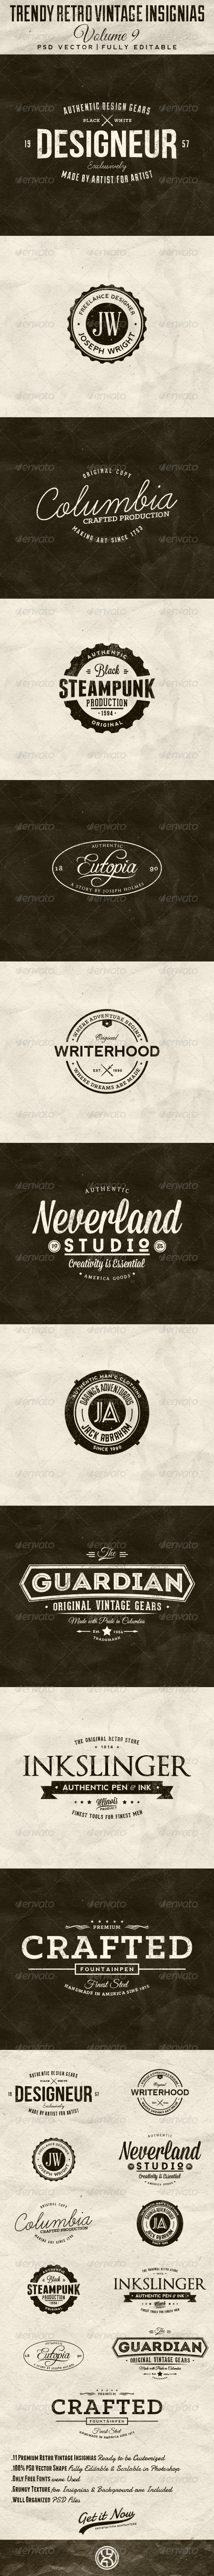 GraphicRiver Trendy Retro Vintage Insignias Volume 9 7504941